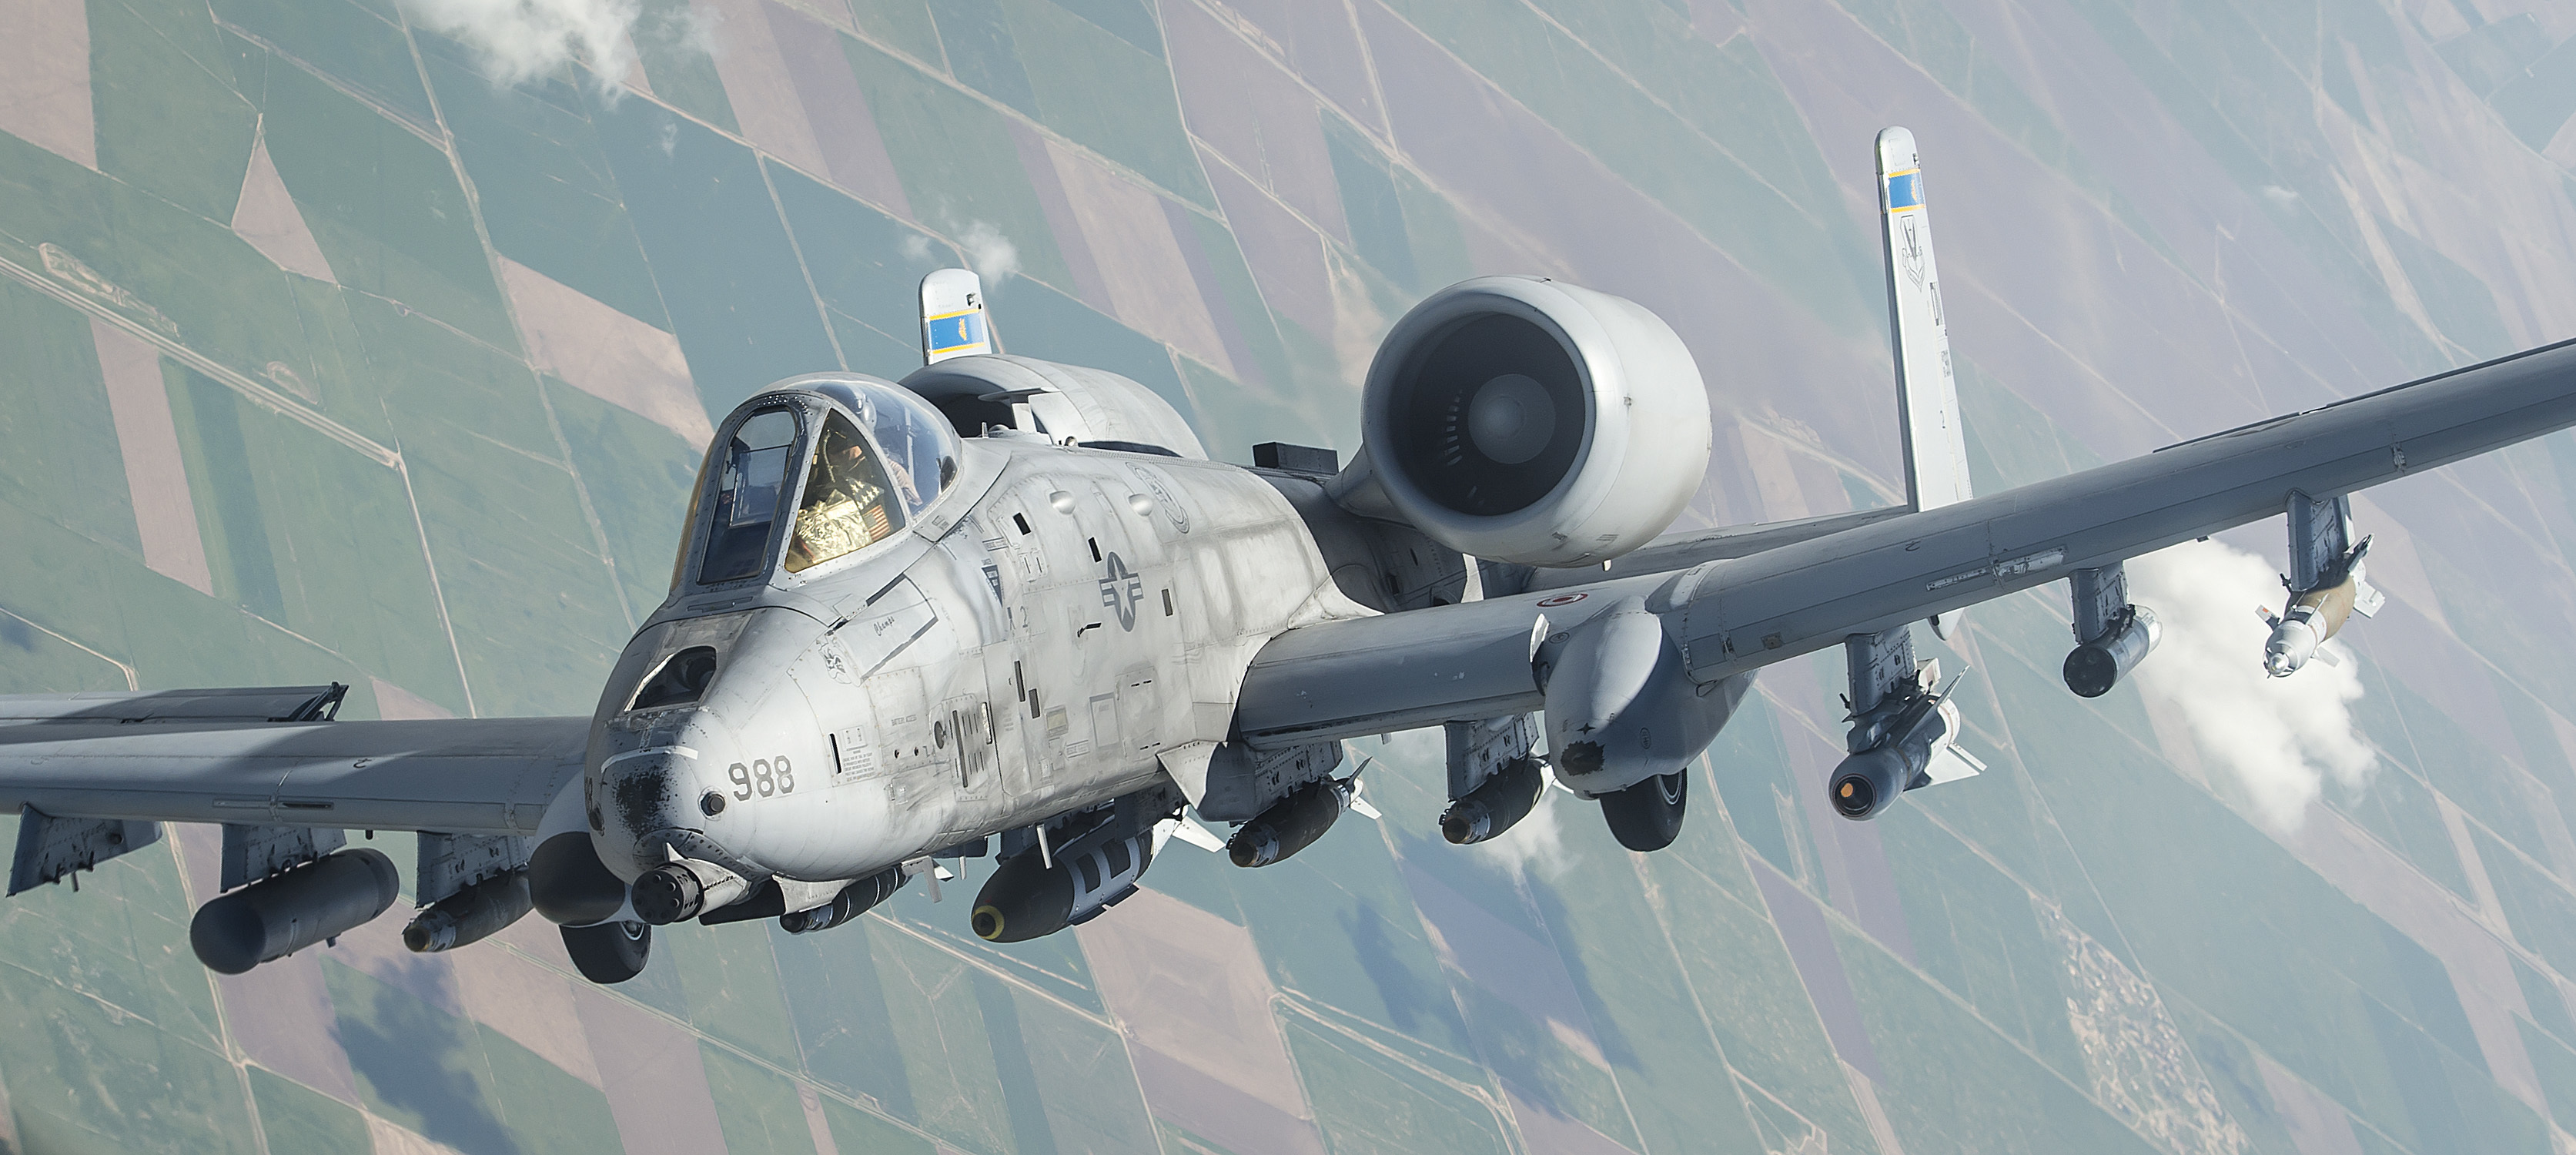 An_A-10_Thunderbolt_II_departs_after_receiving_fuel_%2833509382303%29.jpg